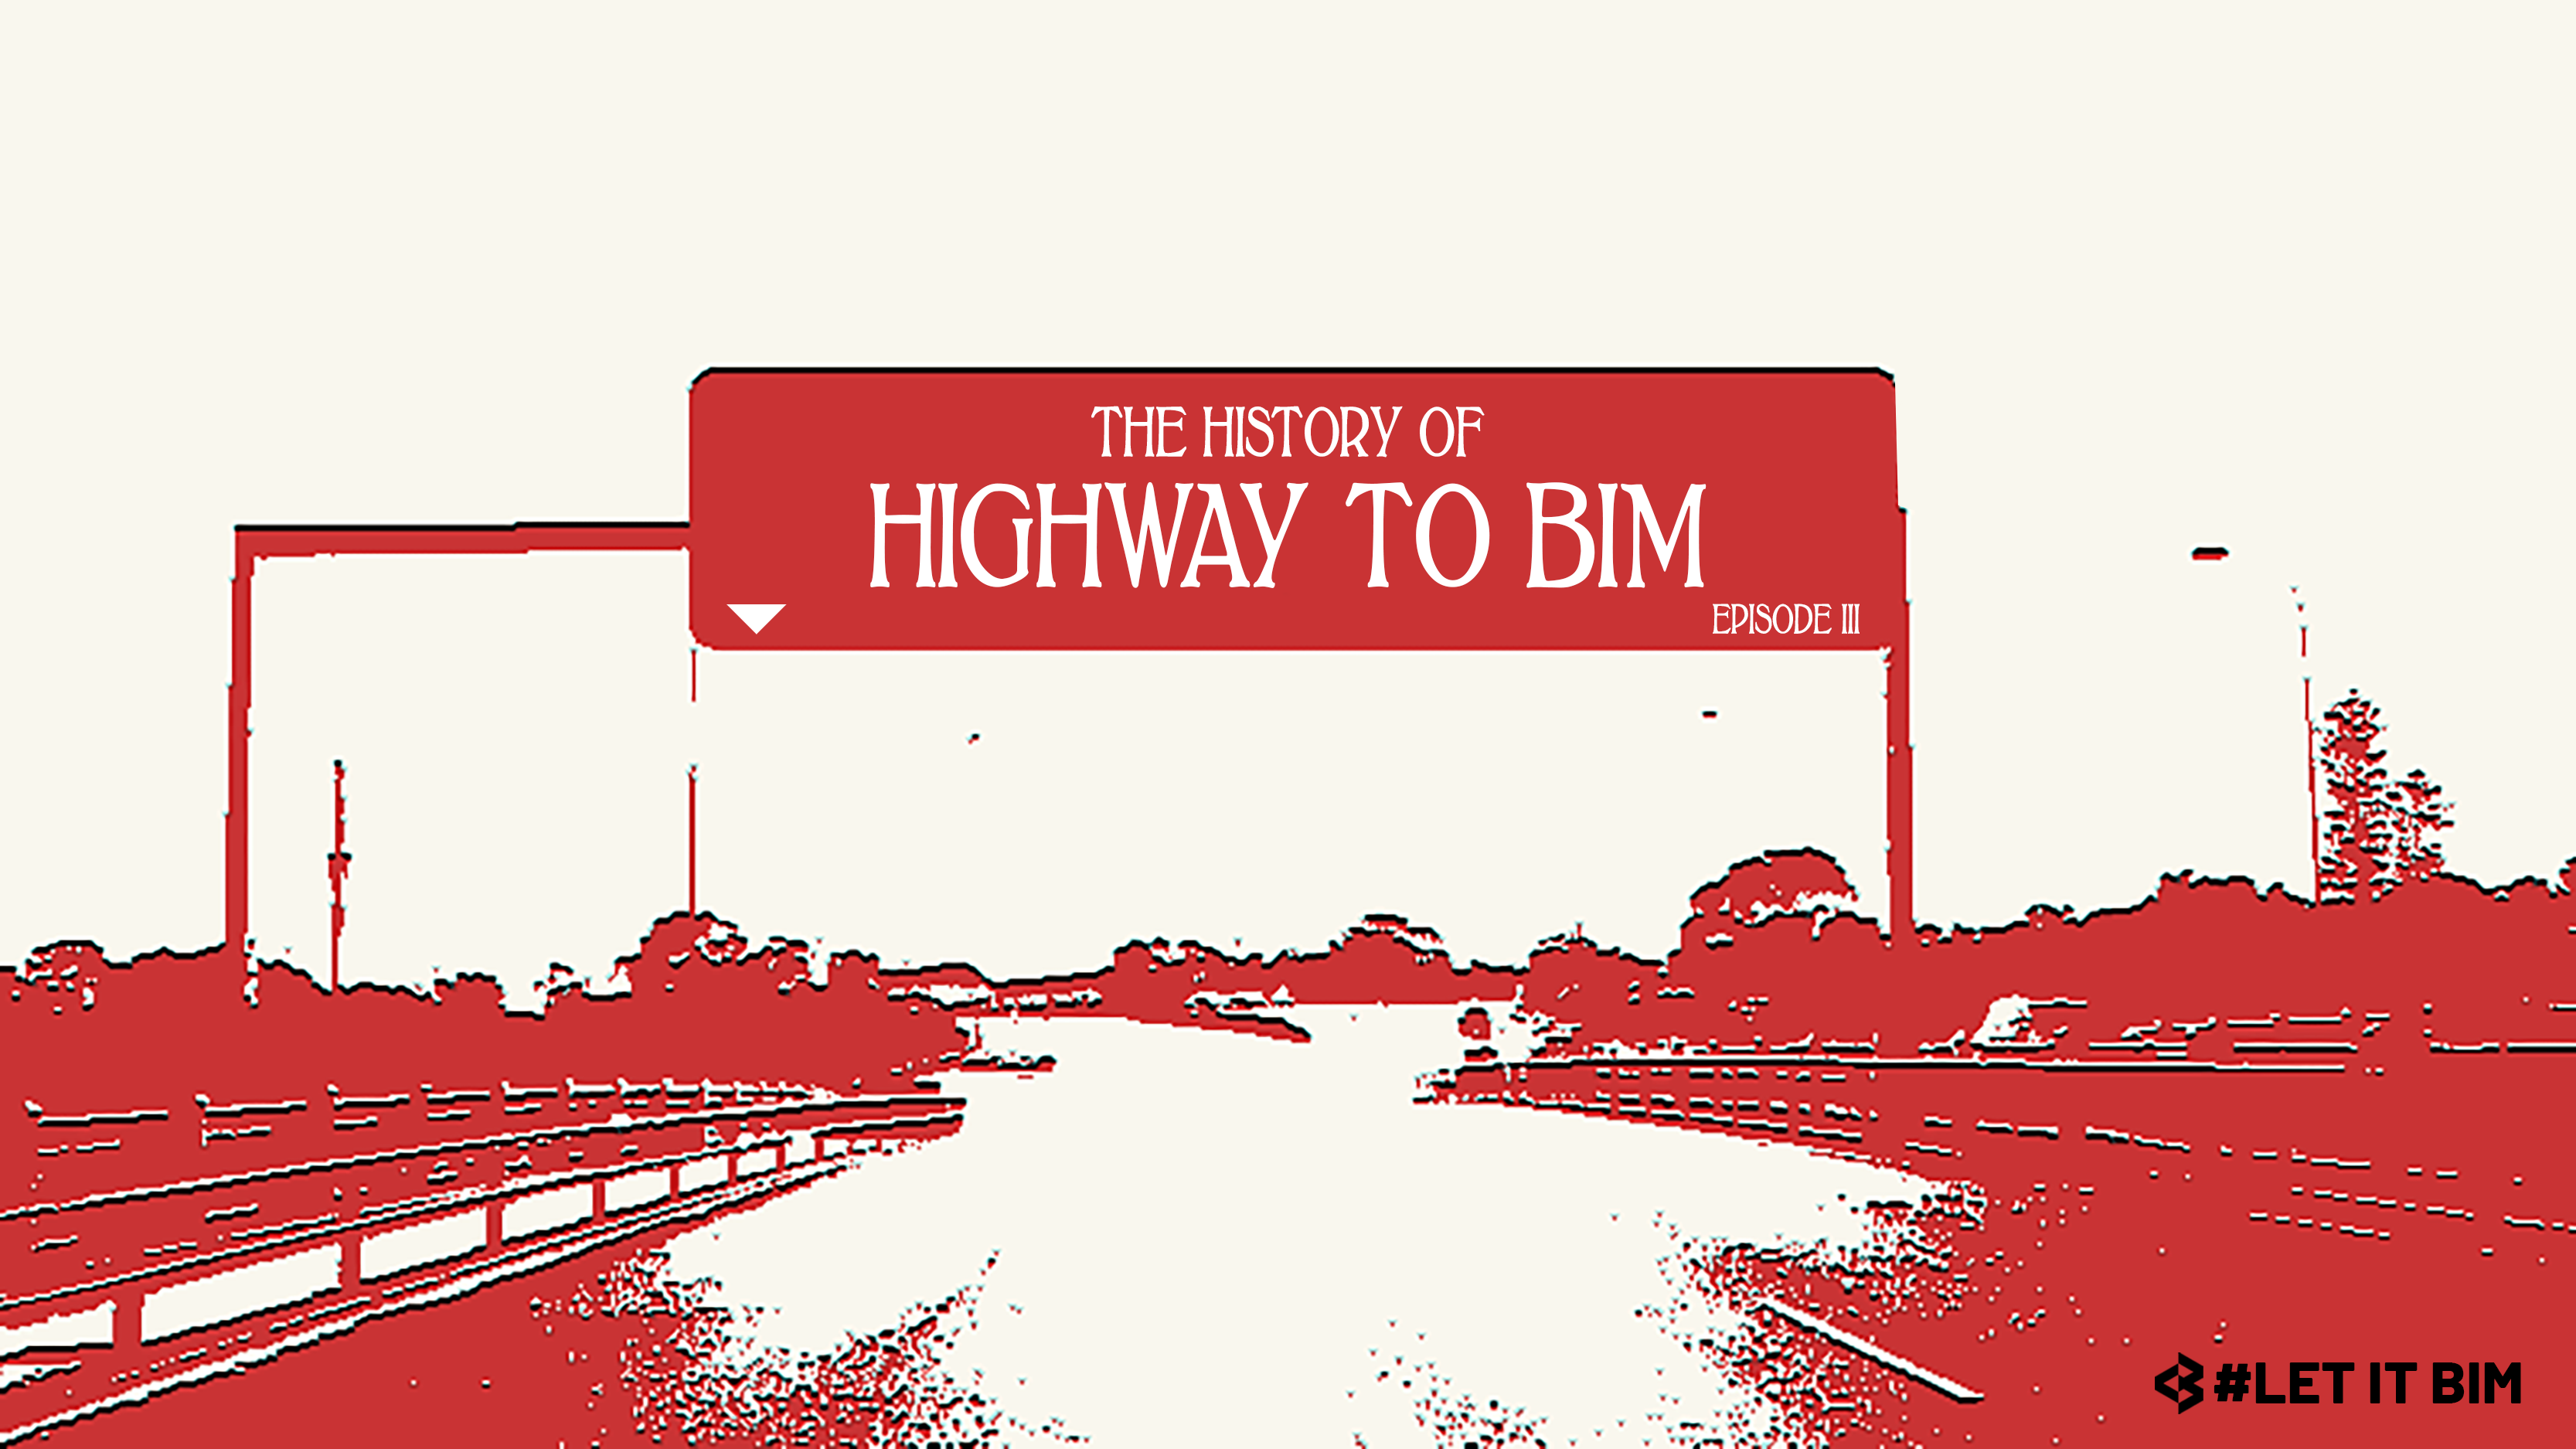 HIGHWAY TO BIM / La historia de BIM Episodio III